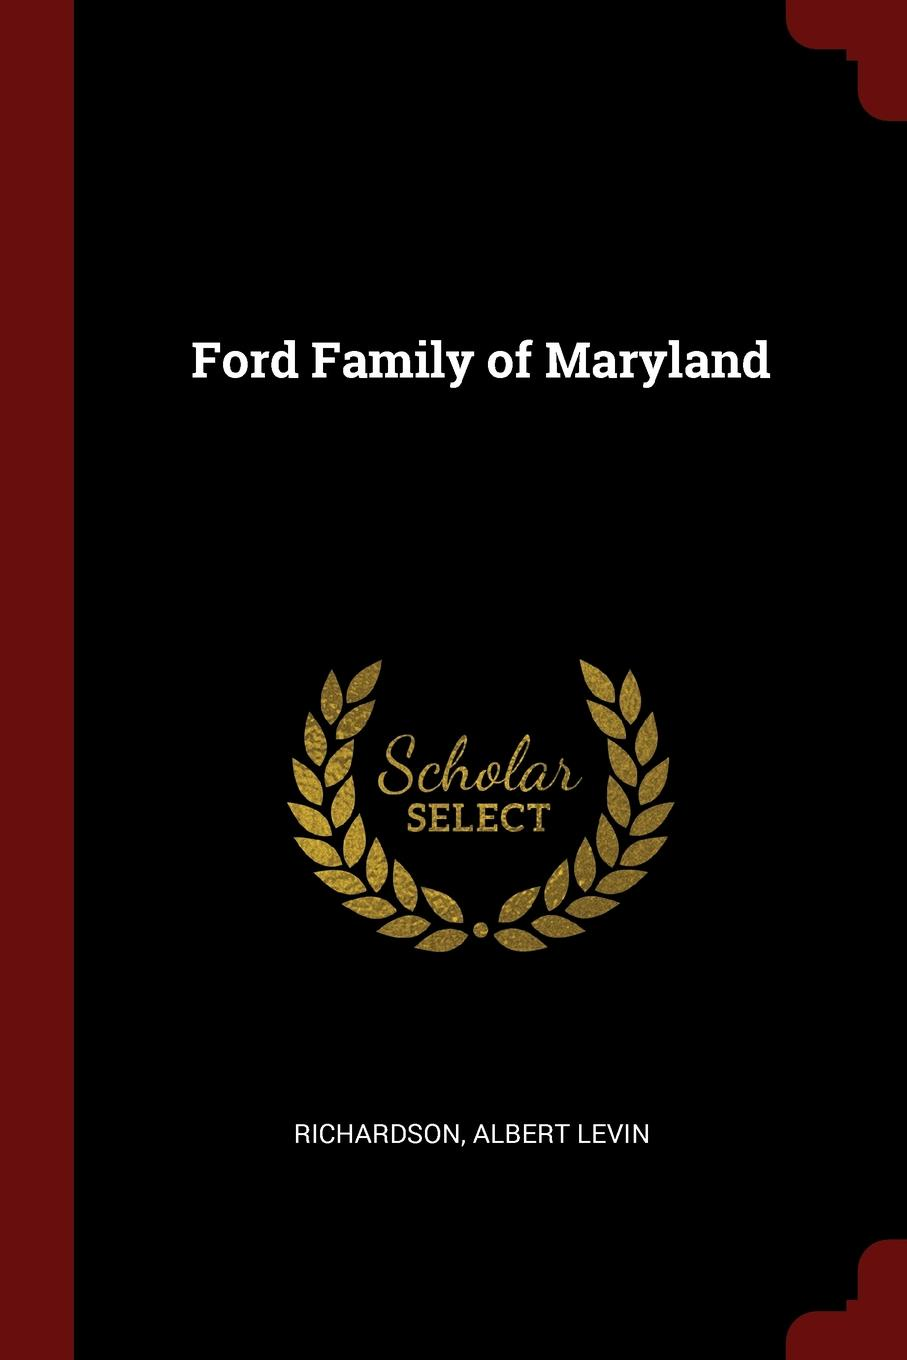 Albert Levin Richardson Ford Family of Maryland